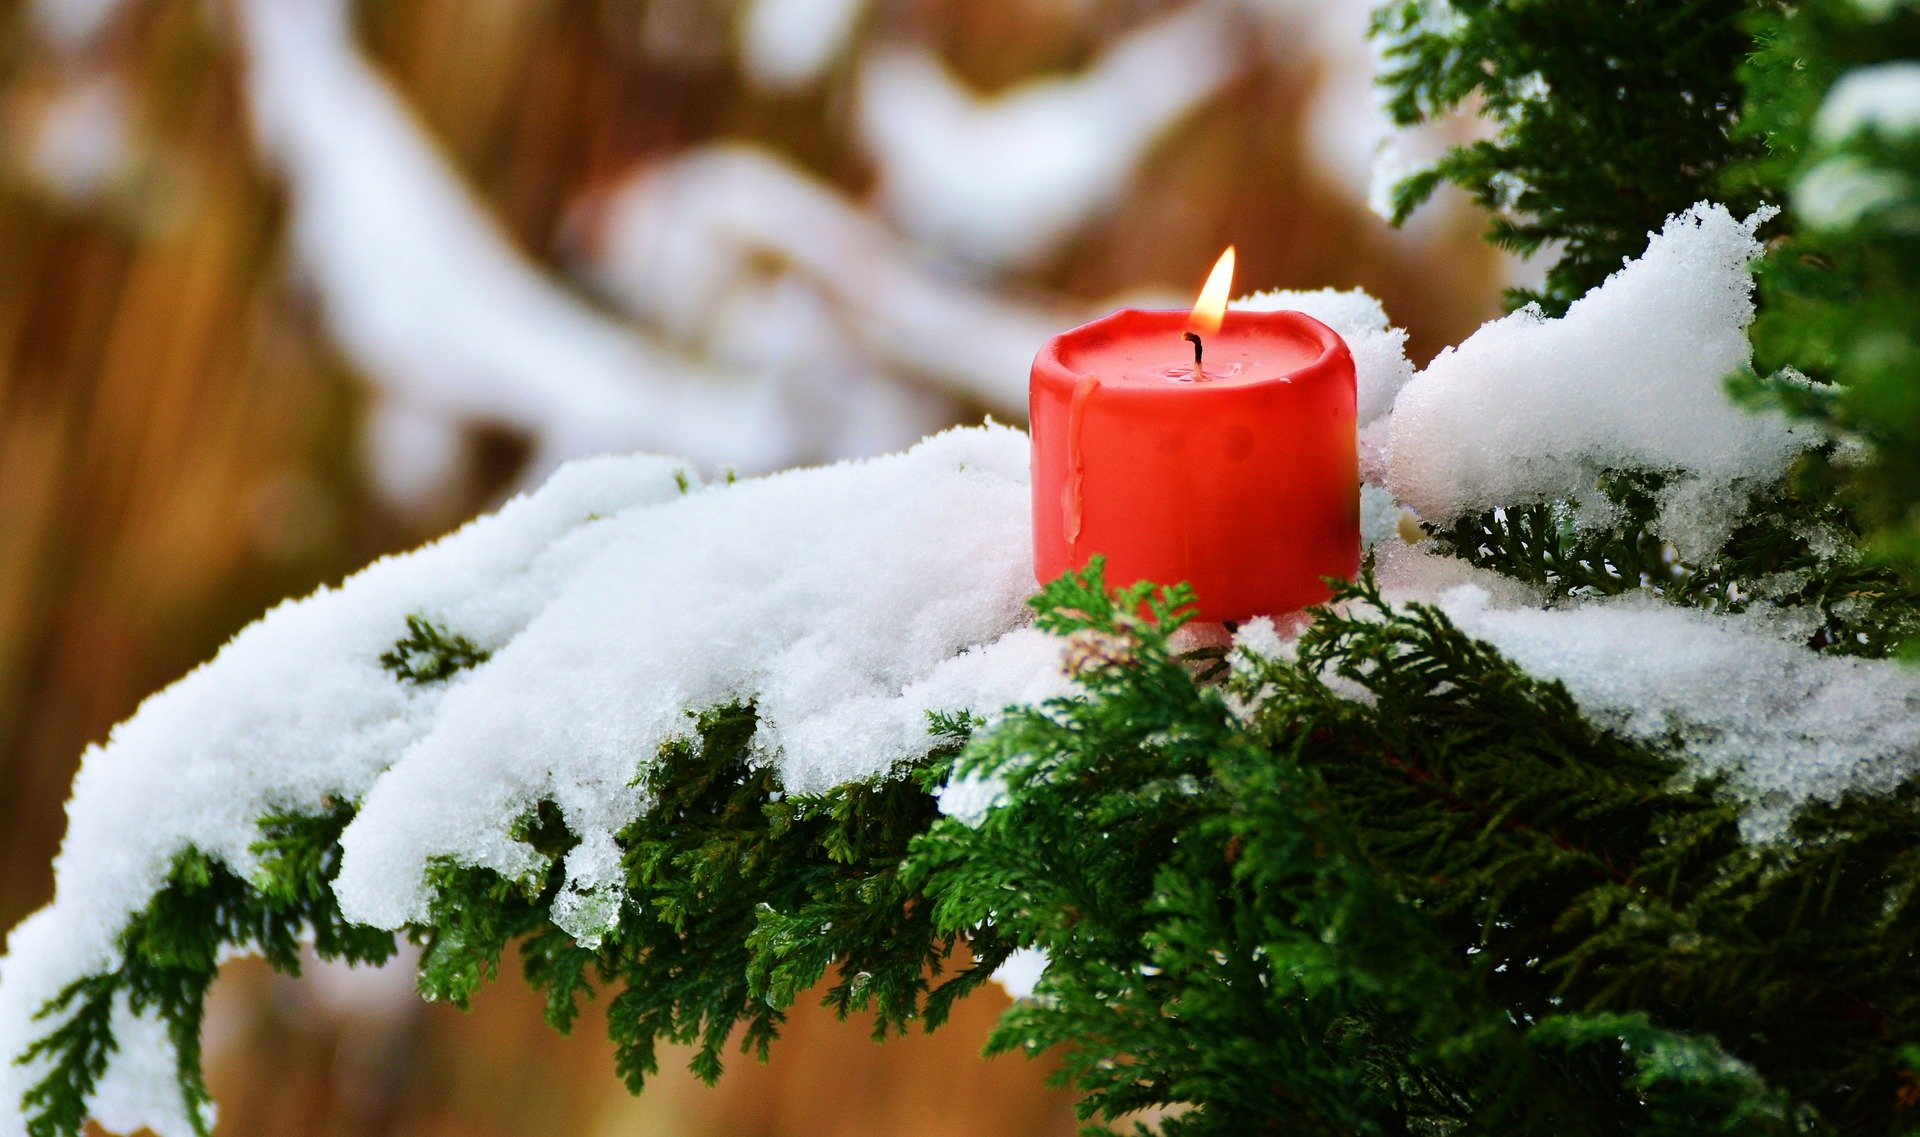 XMAS candle. congerdesign. via Pixabay. CC0 Creative Commons. candle-2992645_1920